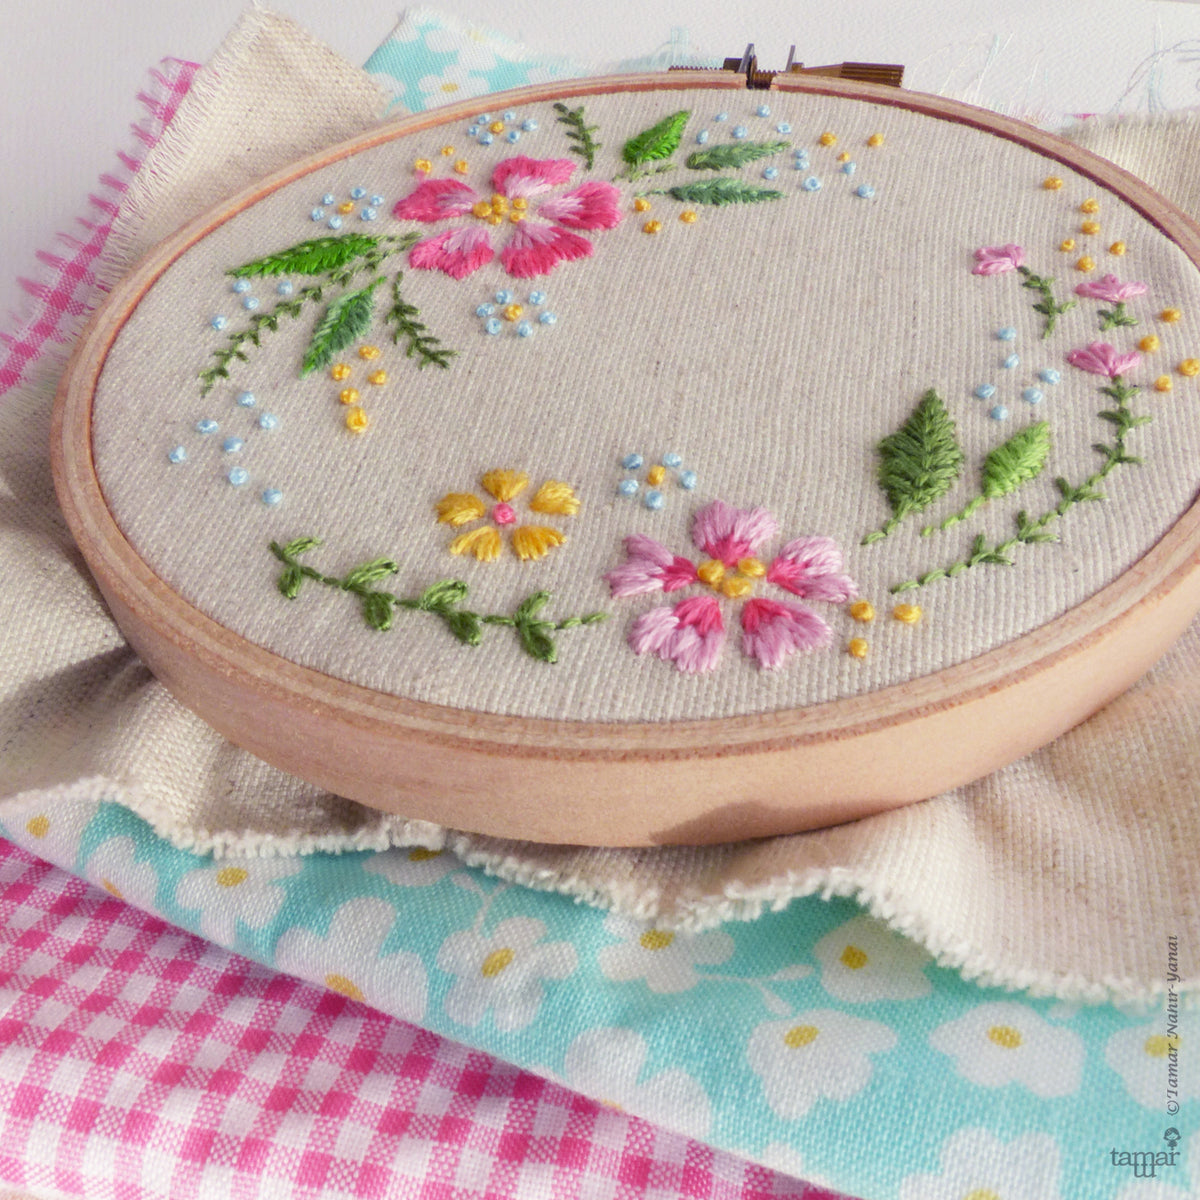 "Modern Embroidery Kit : 4"" Circle of Flowers by Tamar Nahir Embroidery Kit - Snuggly Monkey"